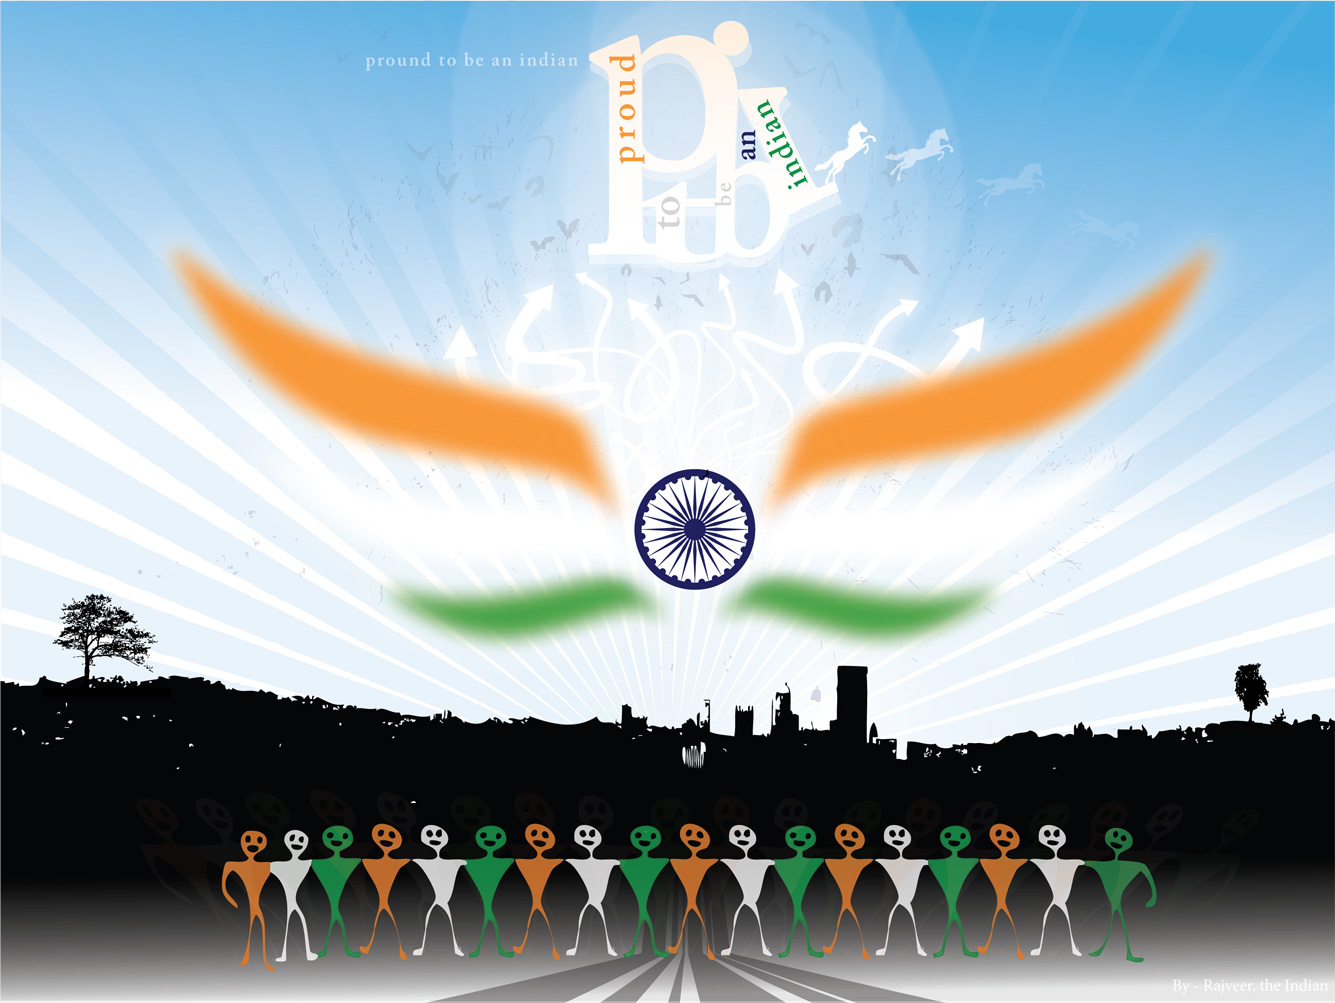 http://4.bp.blogspot.com/-9RPH9UGDSsE/TcGjy3fAHlI/AAAAAAAAAeI/kuQXLE_G5Ew/s1600/Flag+Wallpaper+of+India+%25283%2529.jpg